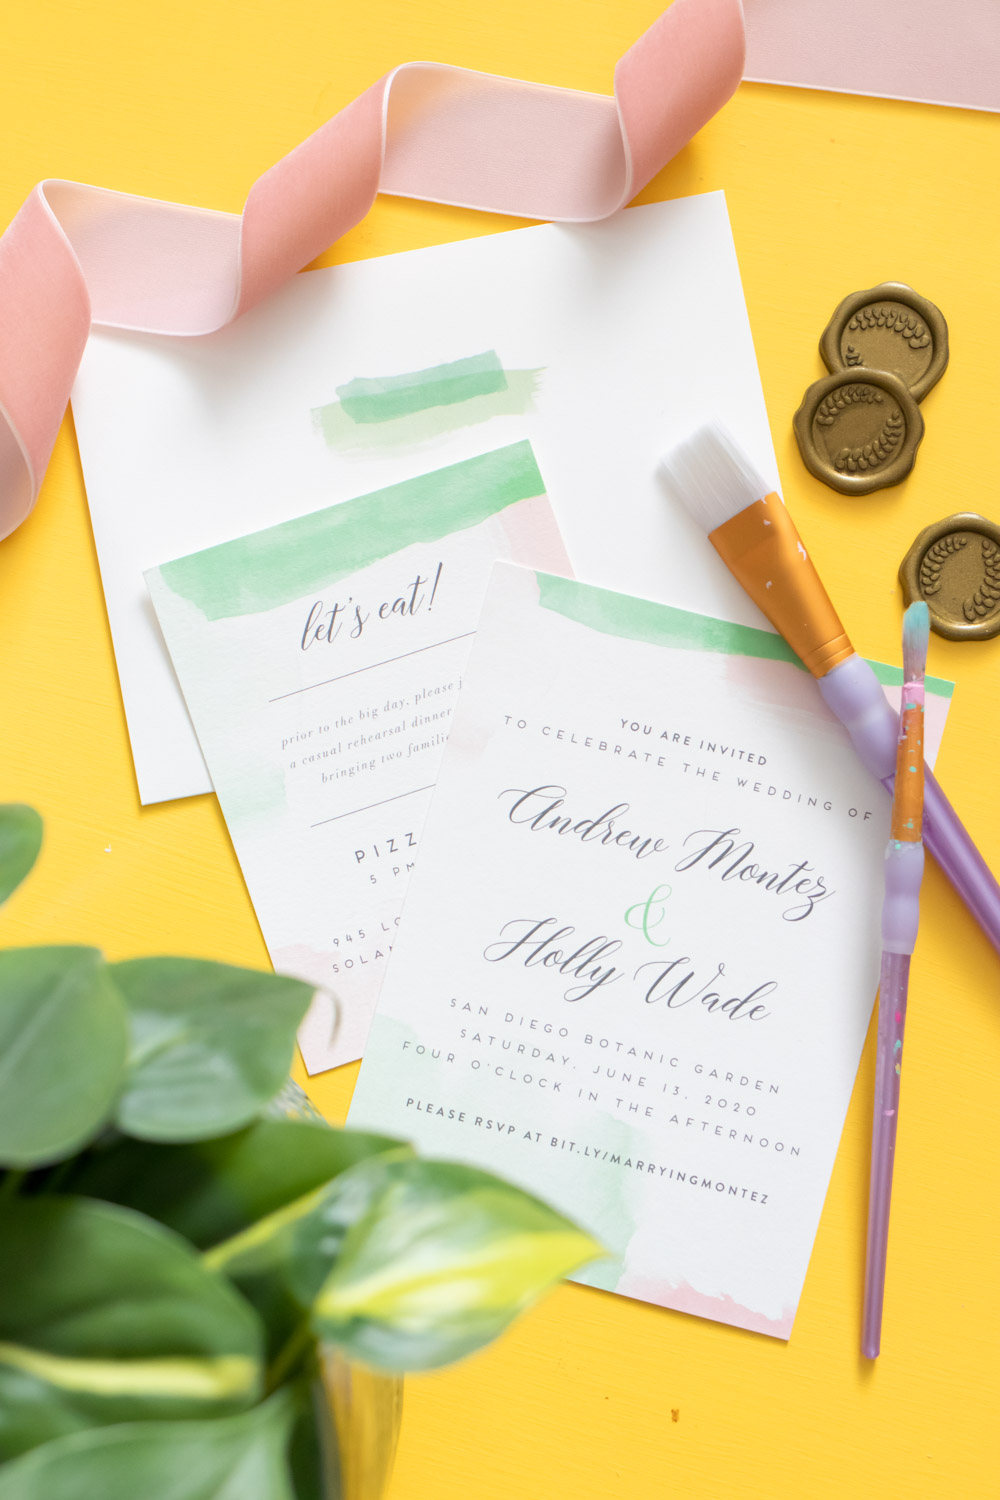 Layered wedding invitations and envelopes